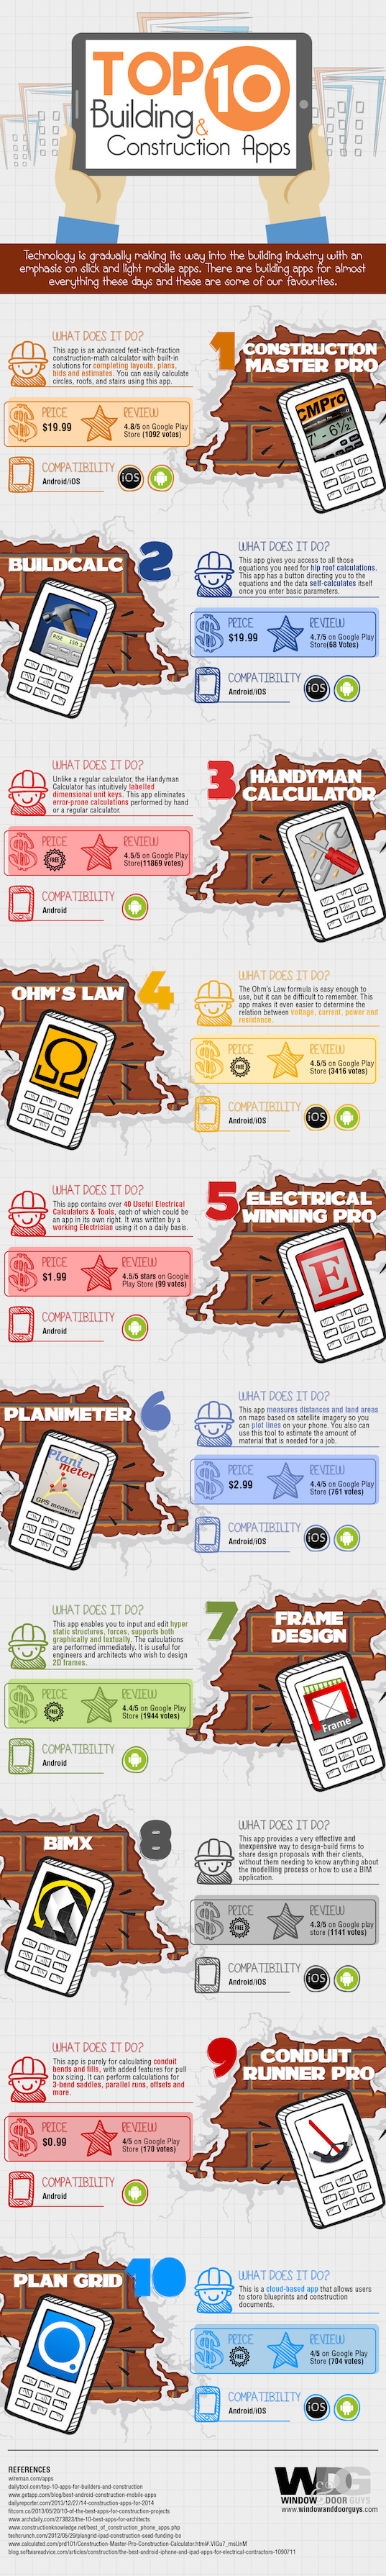 Window and Door Guys, reader submitted content, infographic, mobile apps, construction industry, building industry apps, construction apps